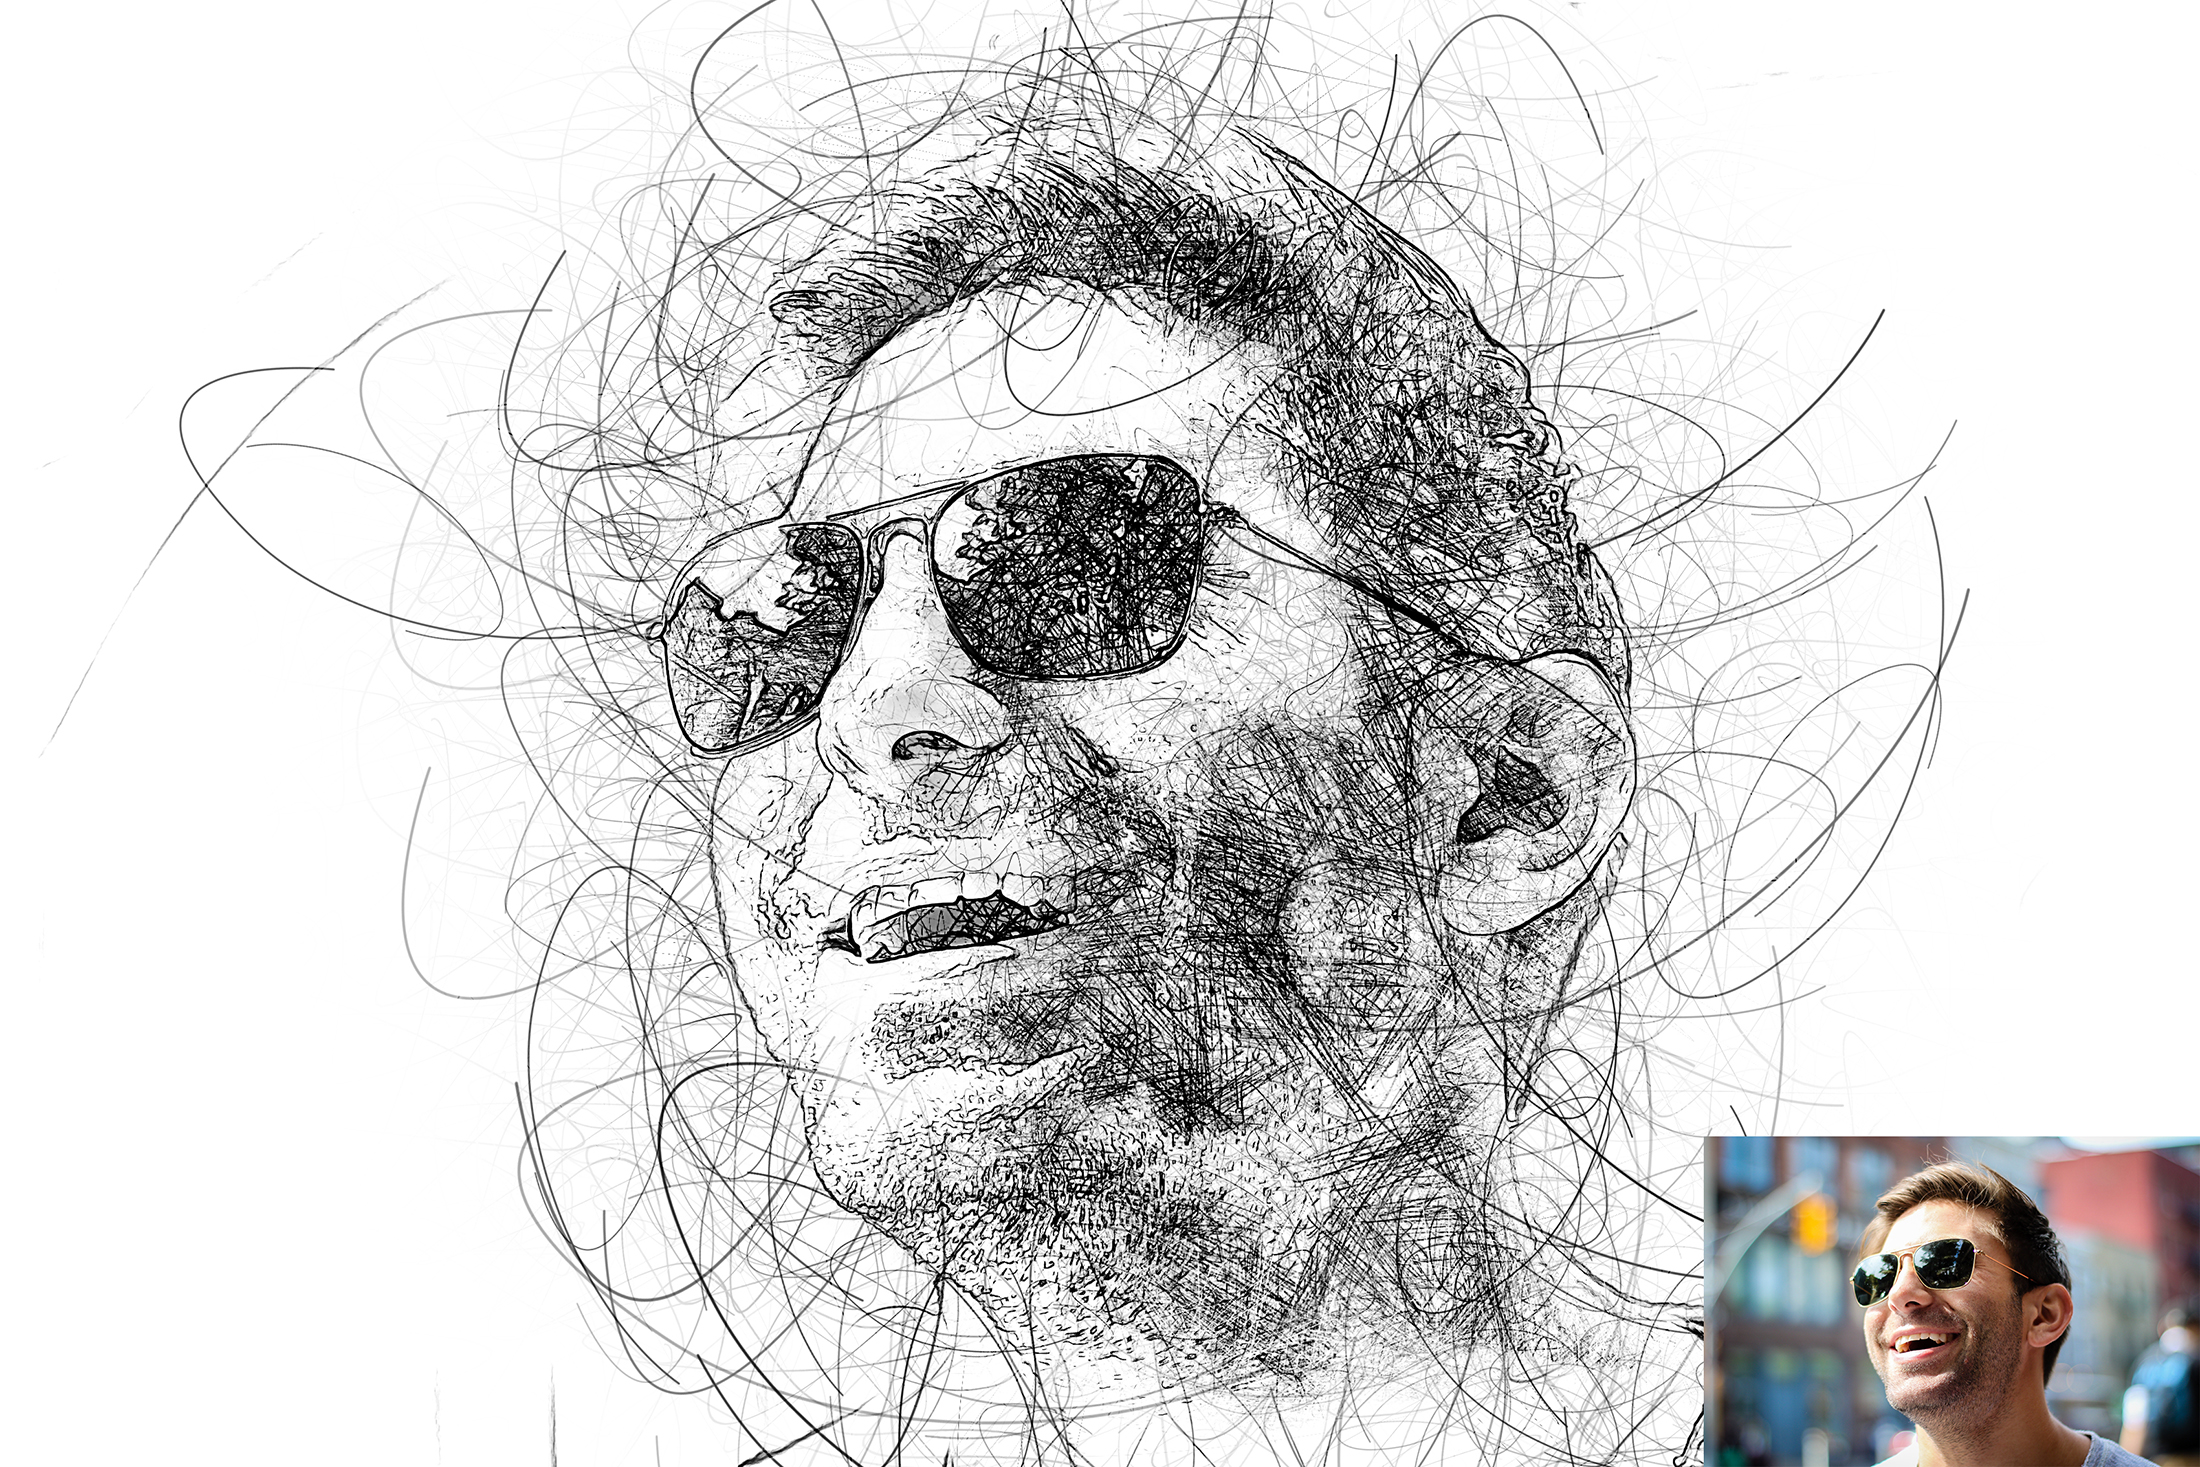 Portrait scribble sketch art photoshop action photo effects actions preview 01 jpg